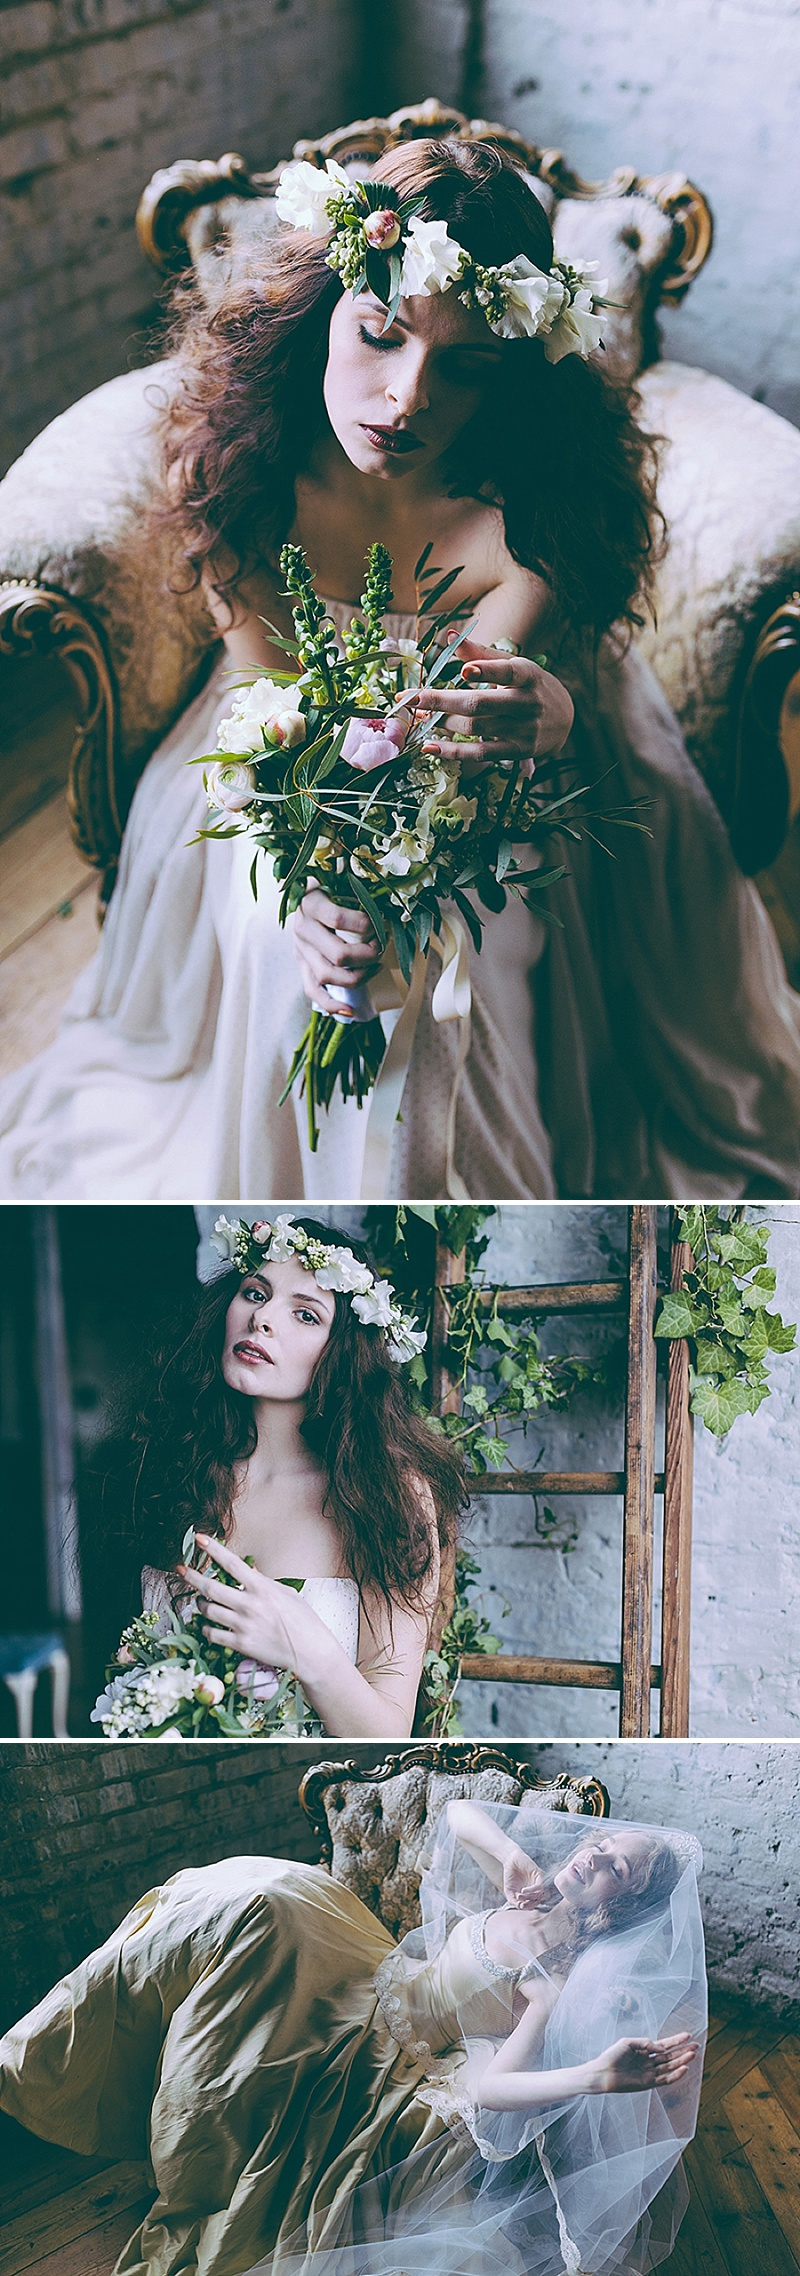 Rustic And Romantic Fairytale Bridal Inspiration Shoot With Gowns From Faith Caton-Barber And Accessories From Rosie Weisencrantz With Images By Miss Gen Photography 1